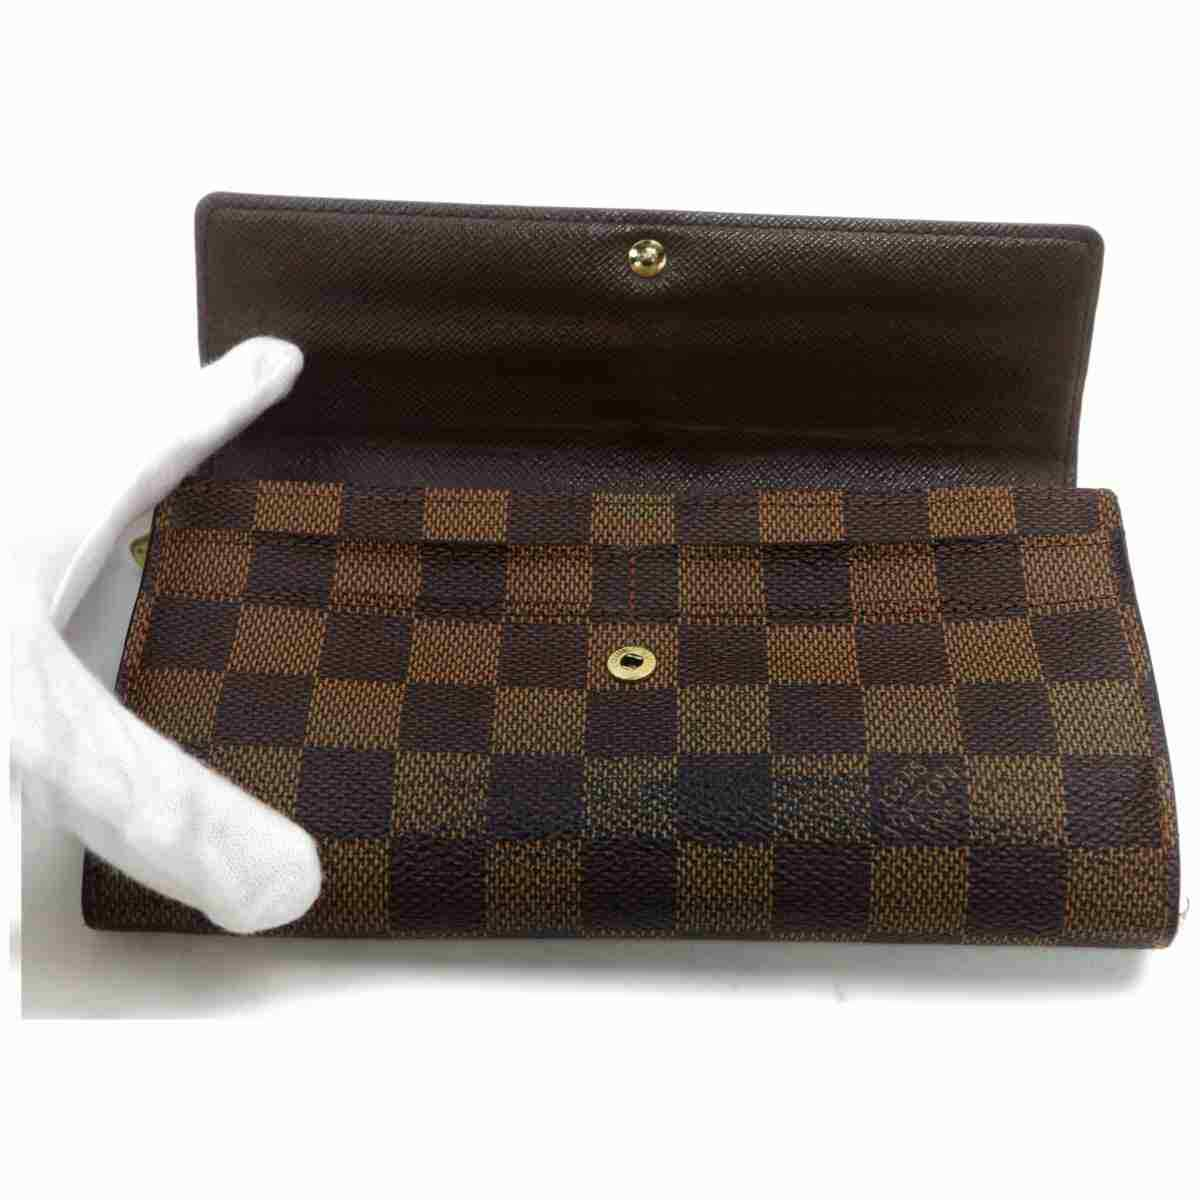 Louis Vuitton Portefeuille Sarah Damier Ebene Long Wallet 11470